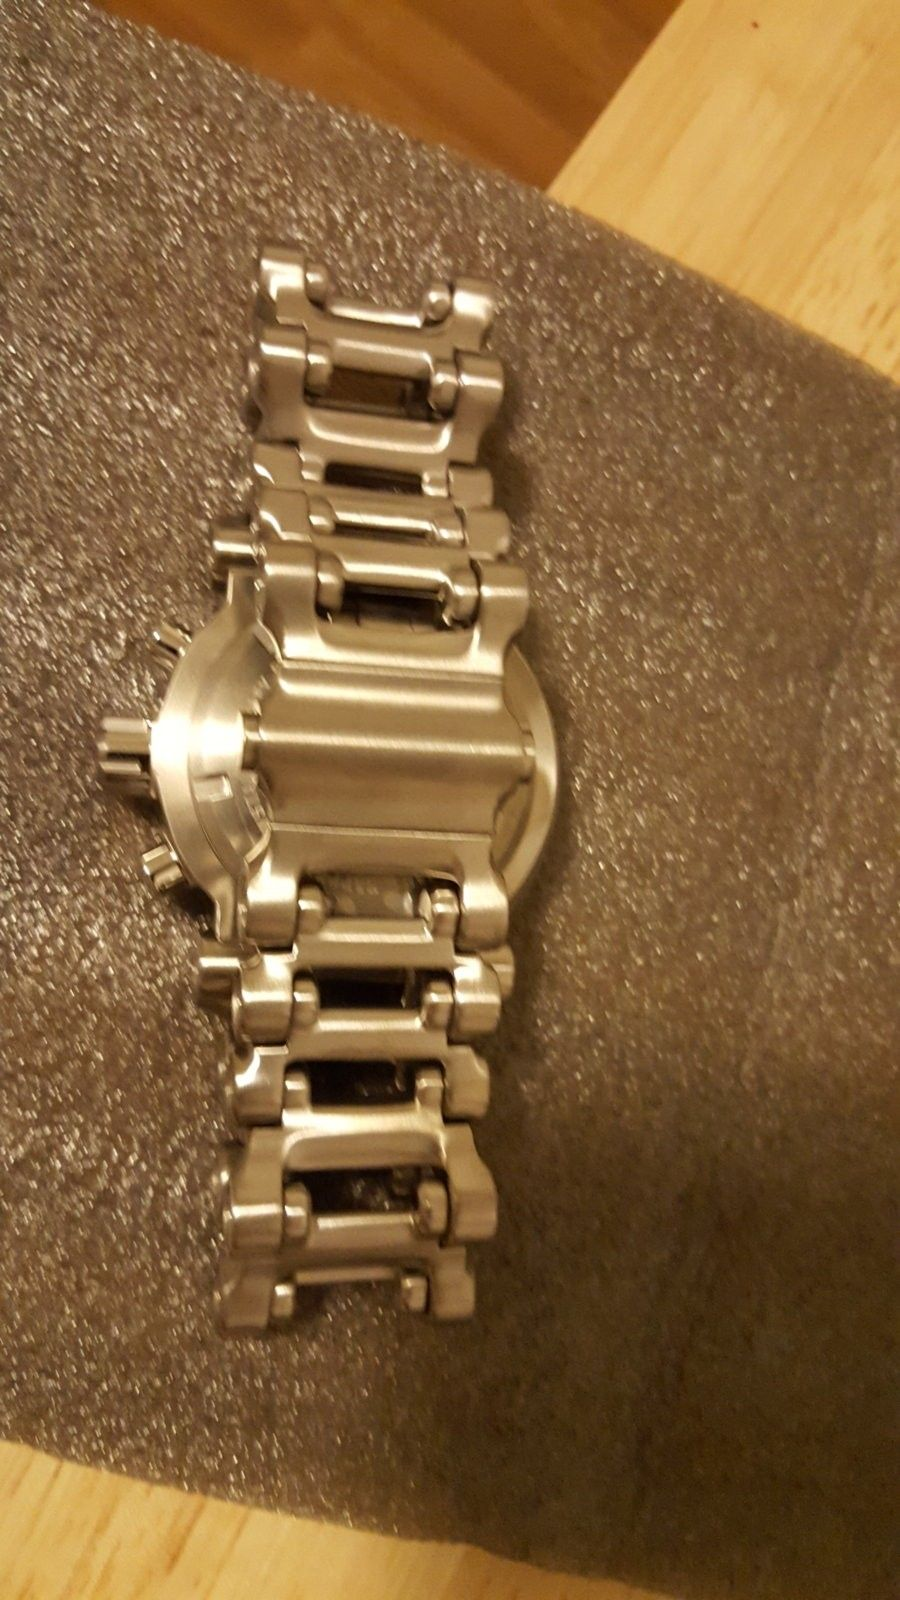 BNIB White Dial Hollow Point Watch $980 Shipped - 20160326_191703.jpg